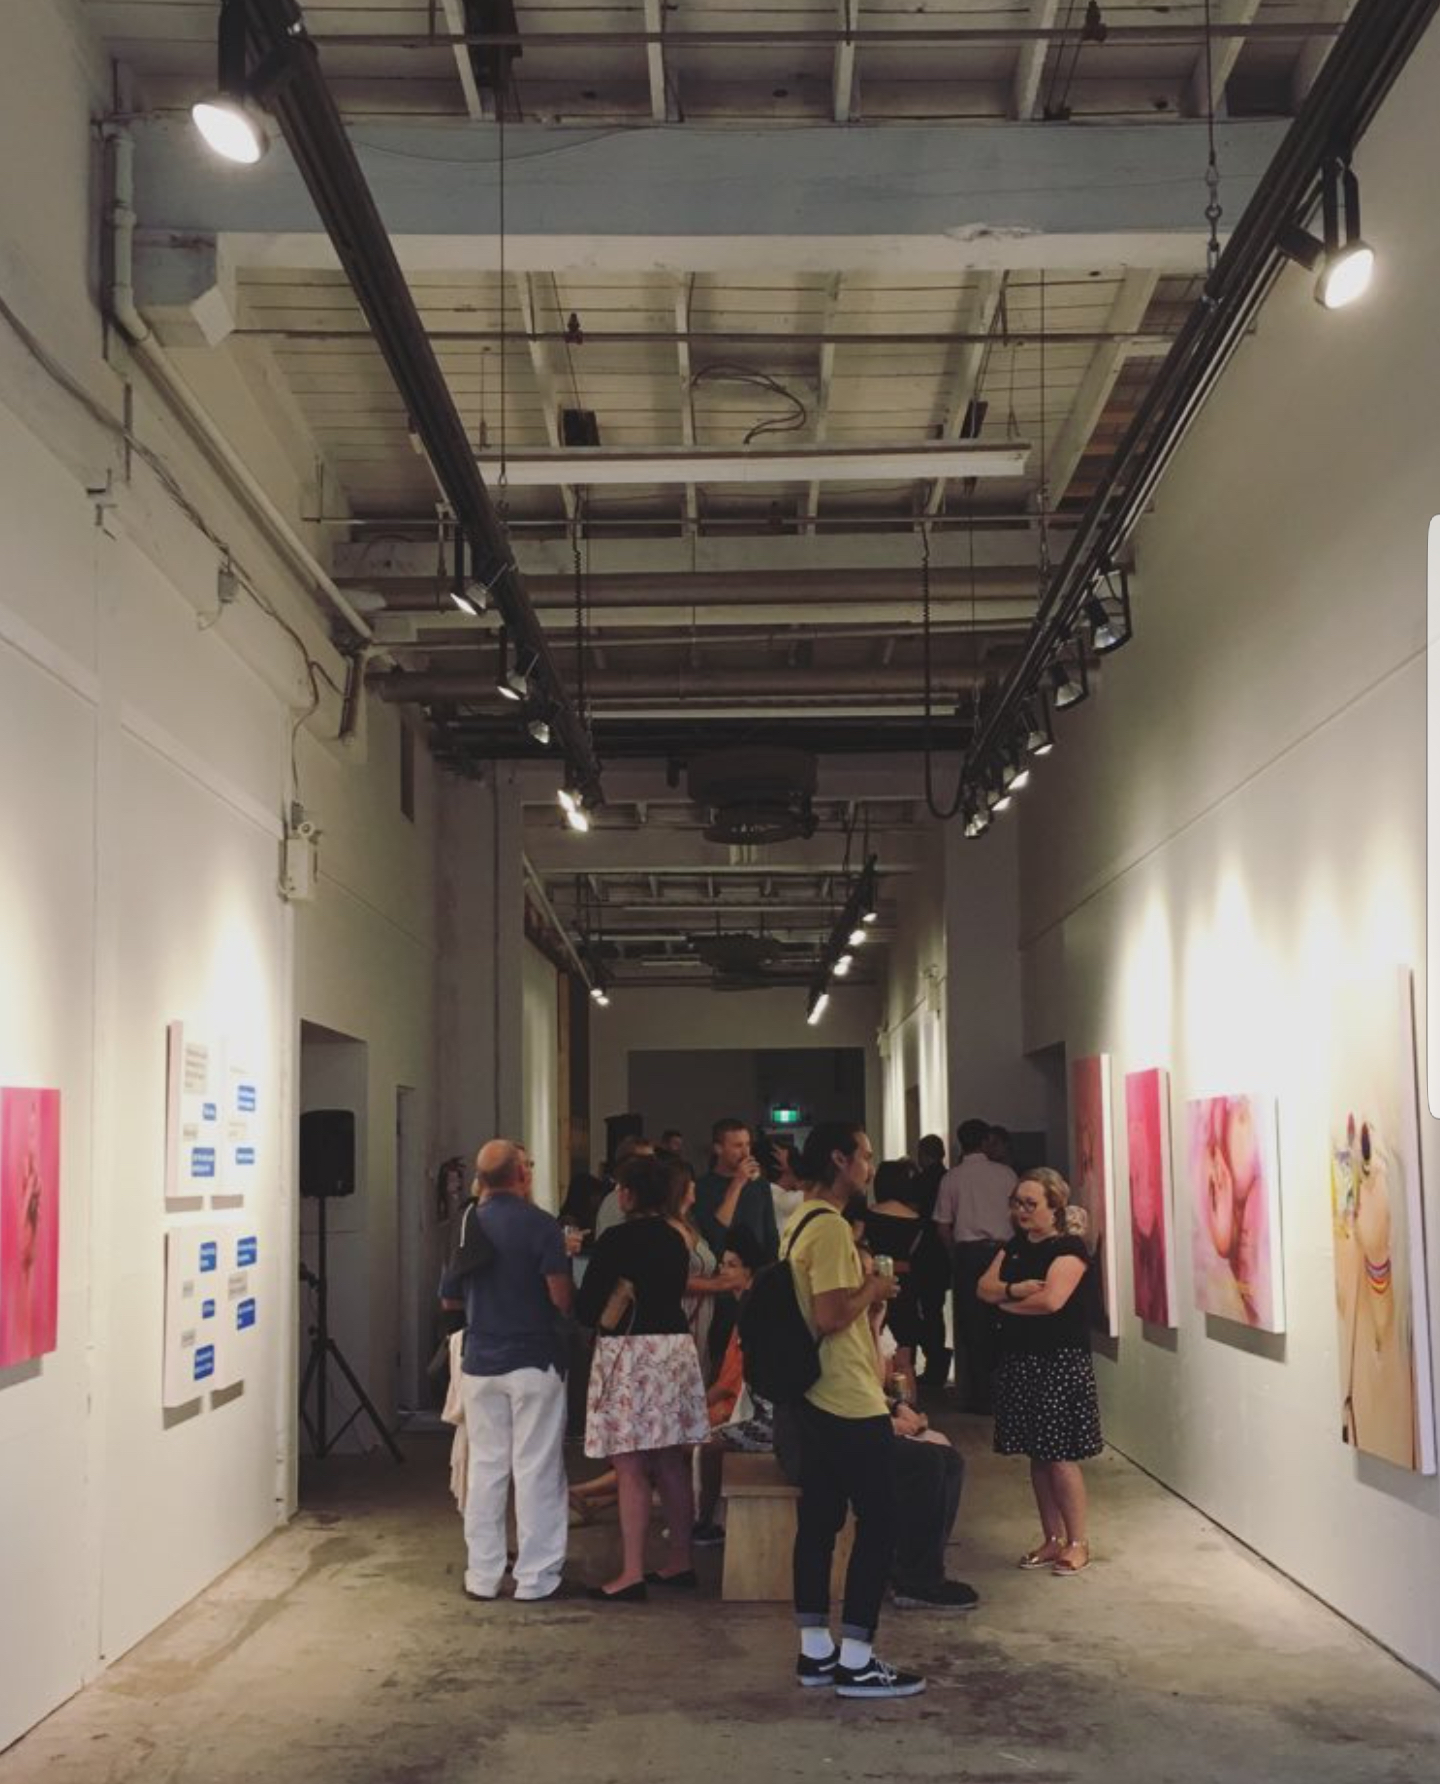 Photo of opening, taken by Heather I.